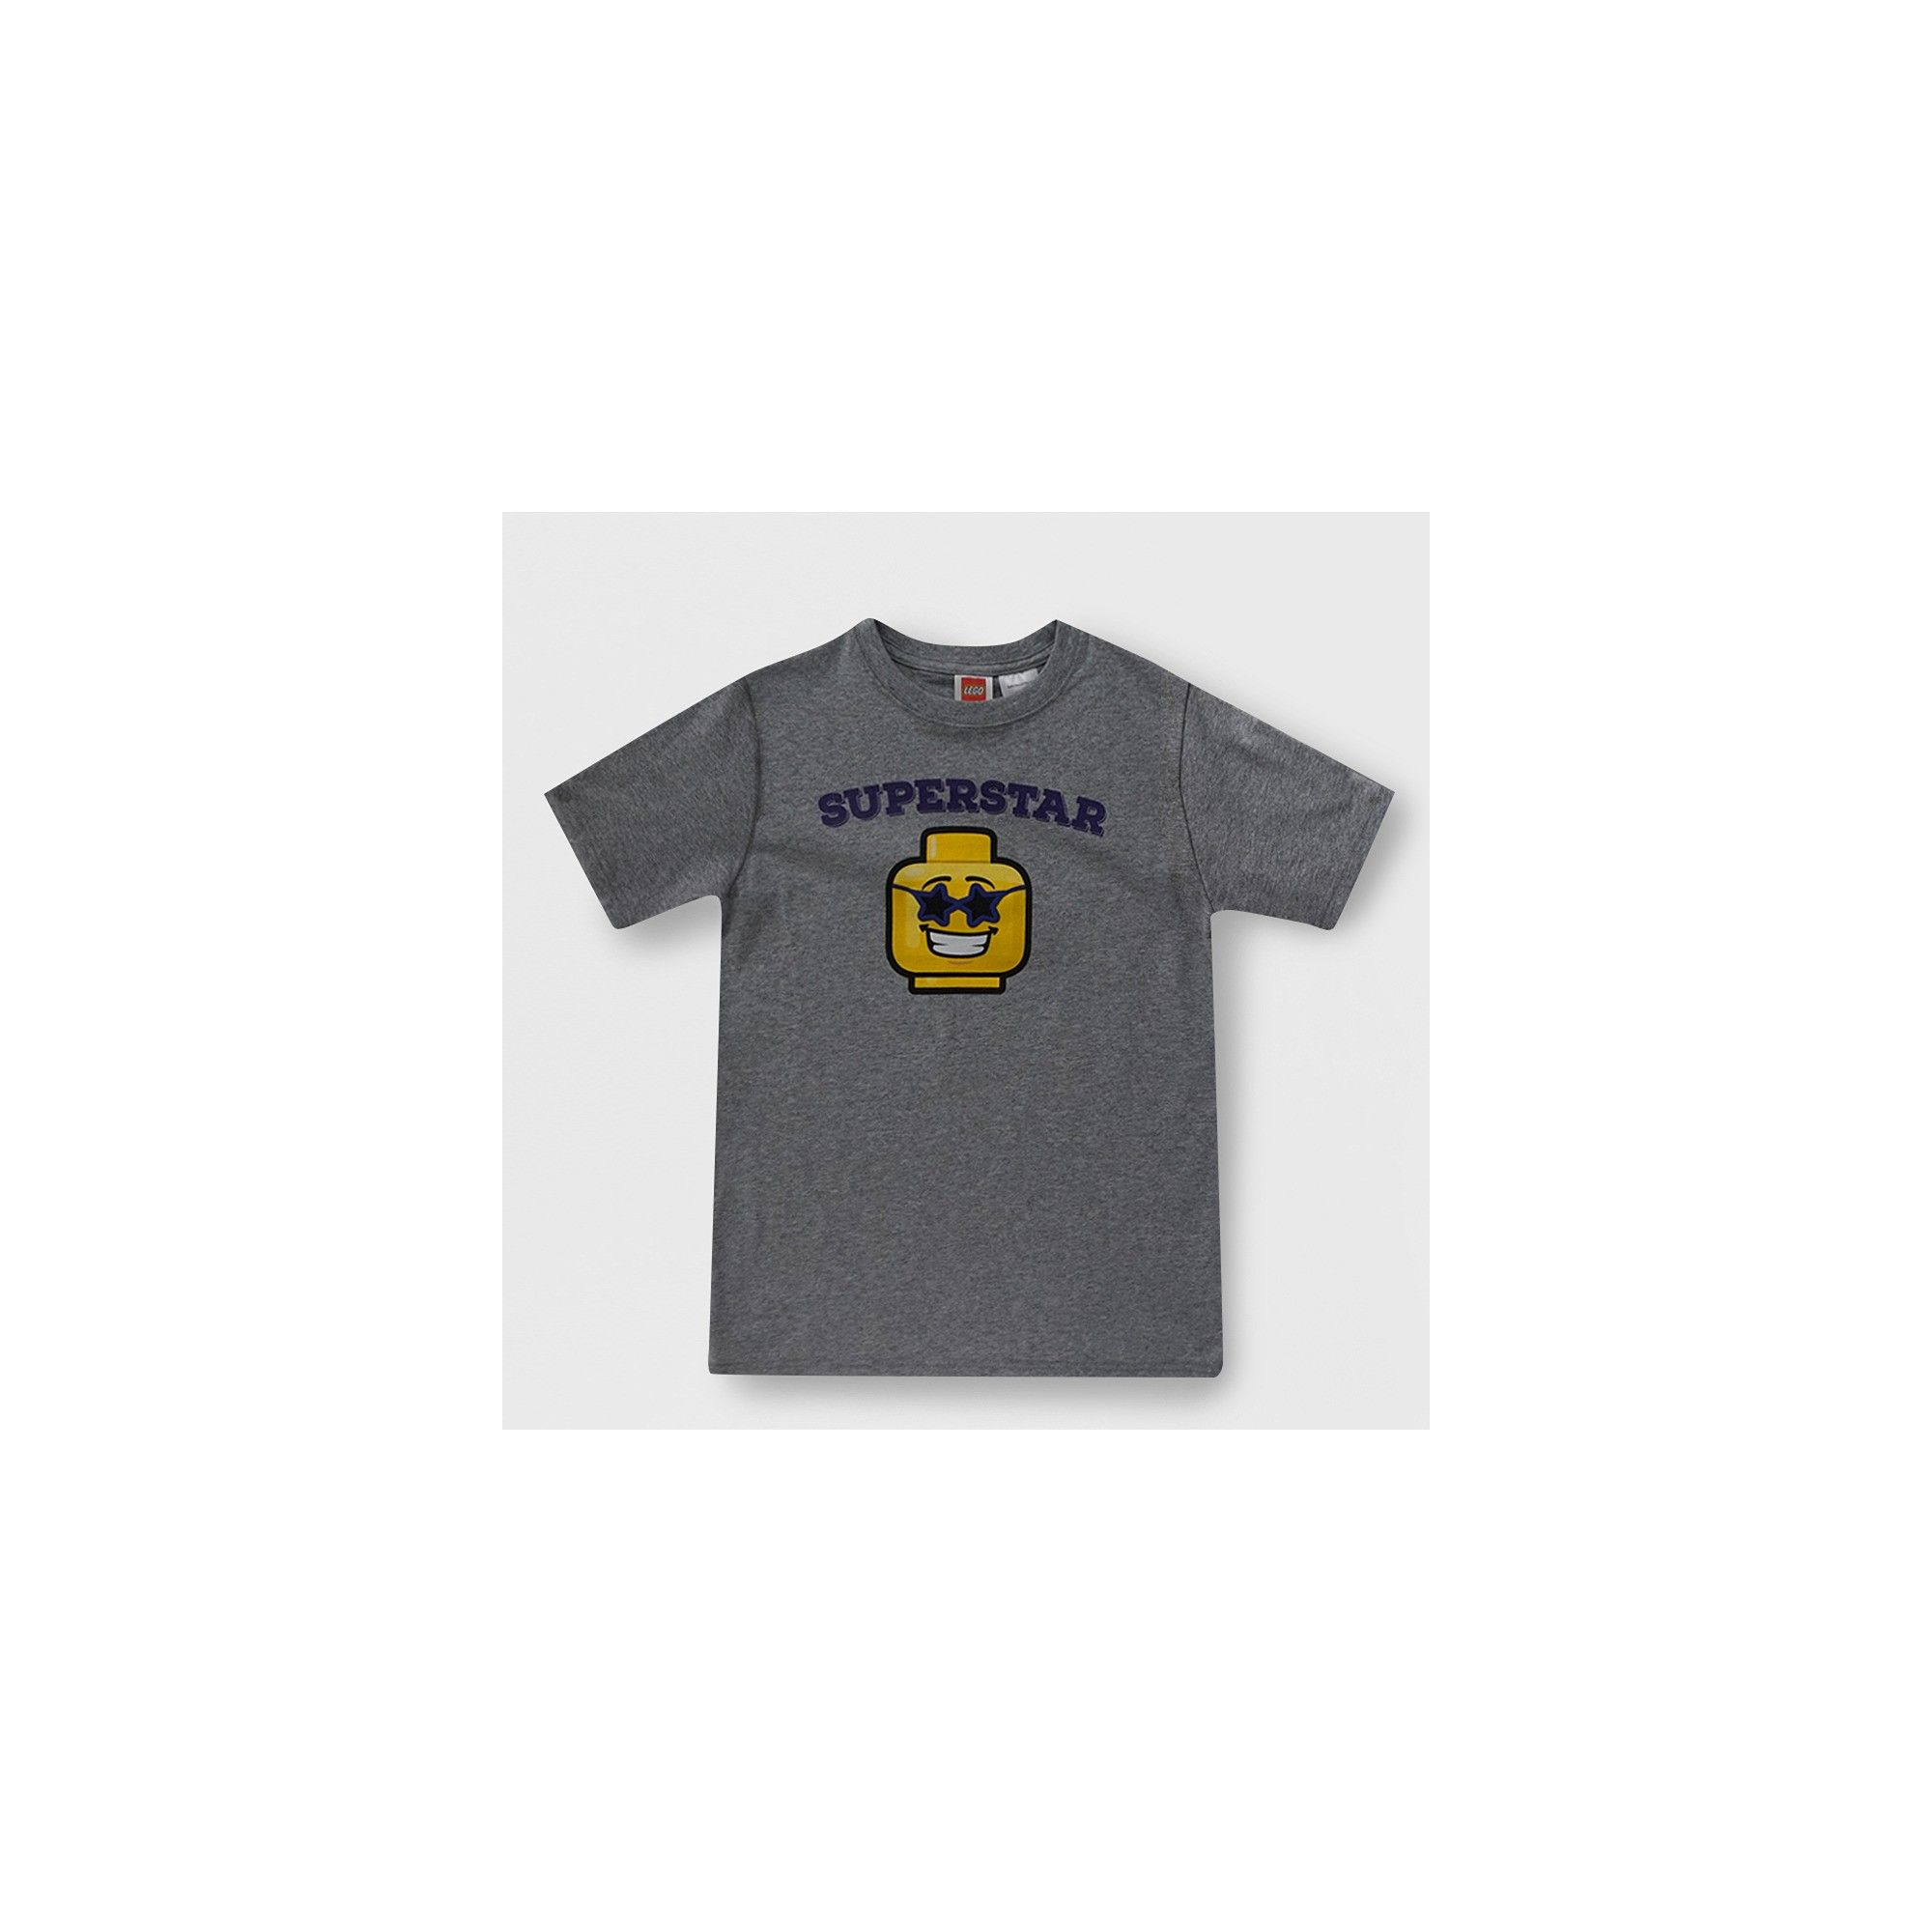 5cf355cb Boys' Lego Superstar Short Sleeve Graphic T-Shirt - Heather Gray XS ...